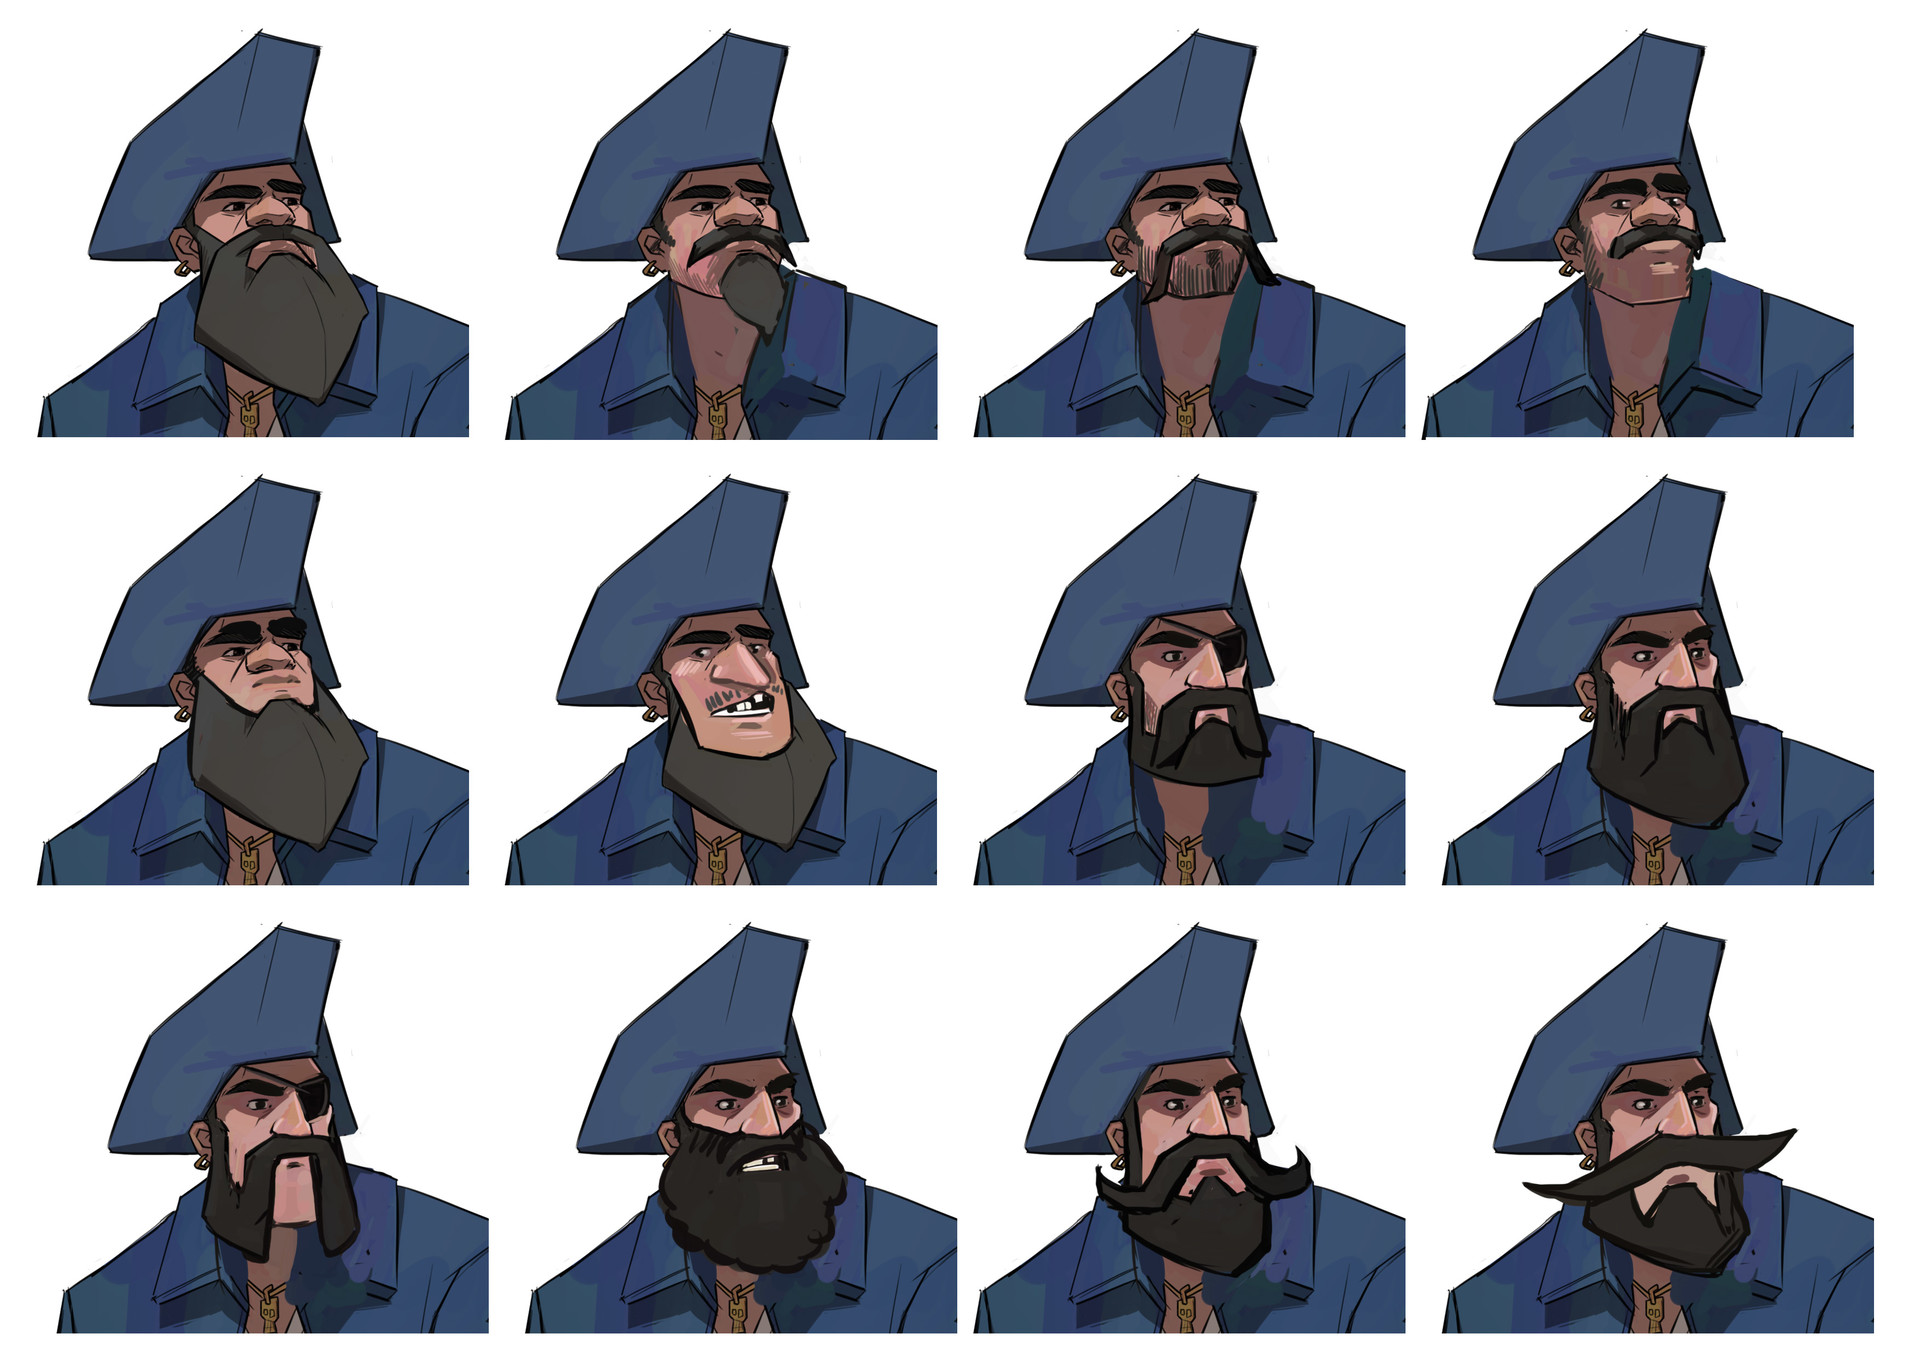 Jake bullock pirate6 faces